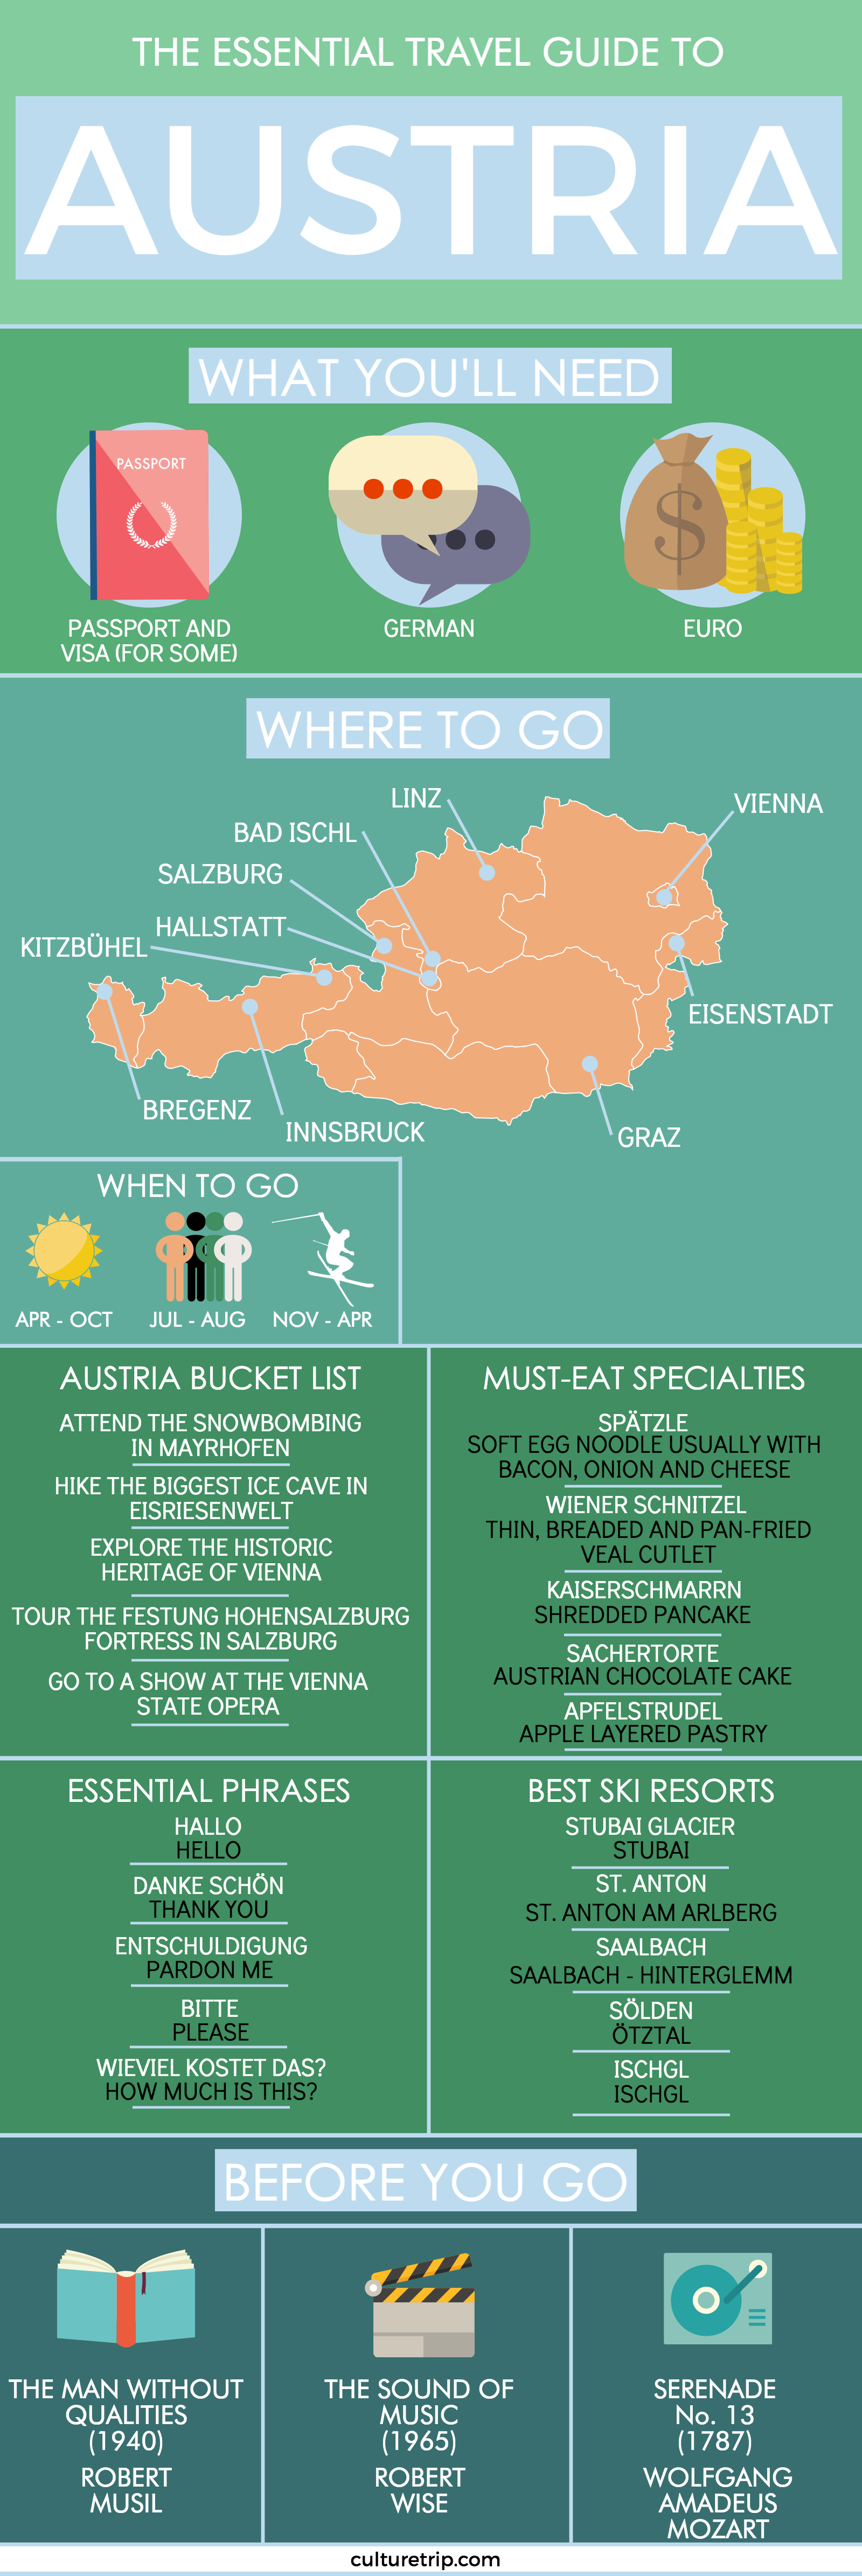 The Best Travel, Food and Culture Guides for Austria - Local News & Top Things to Do.